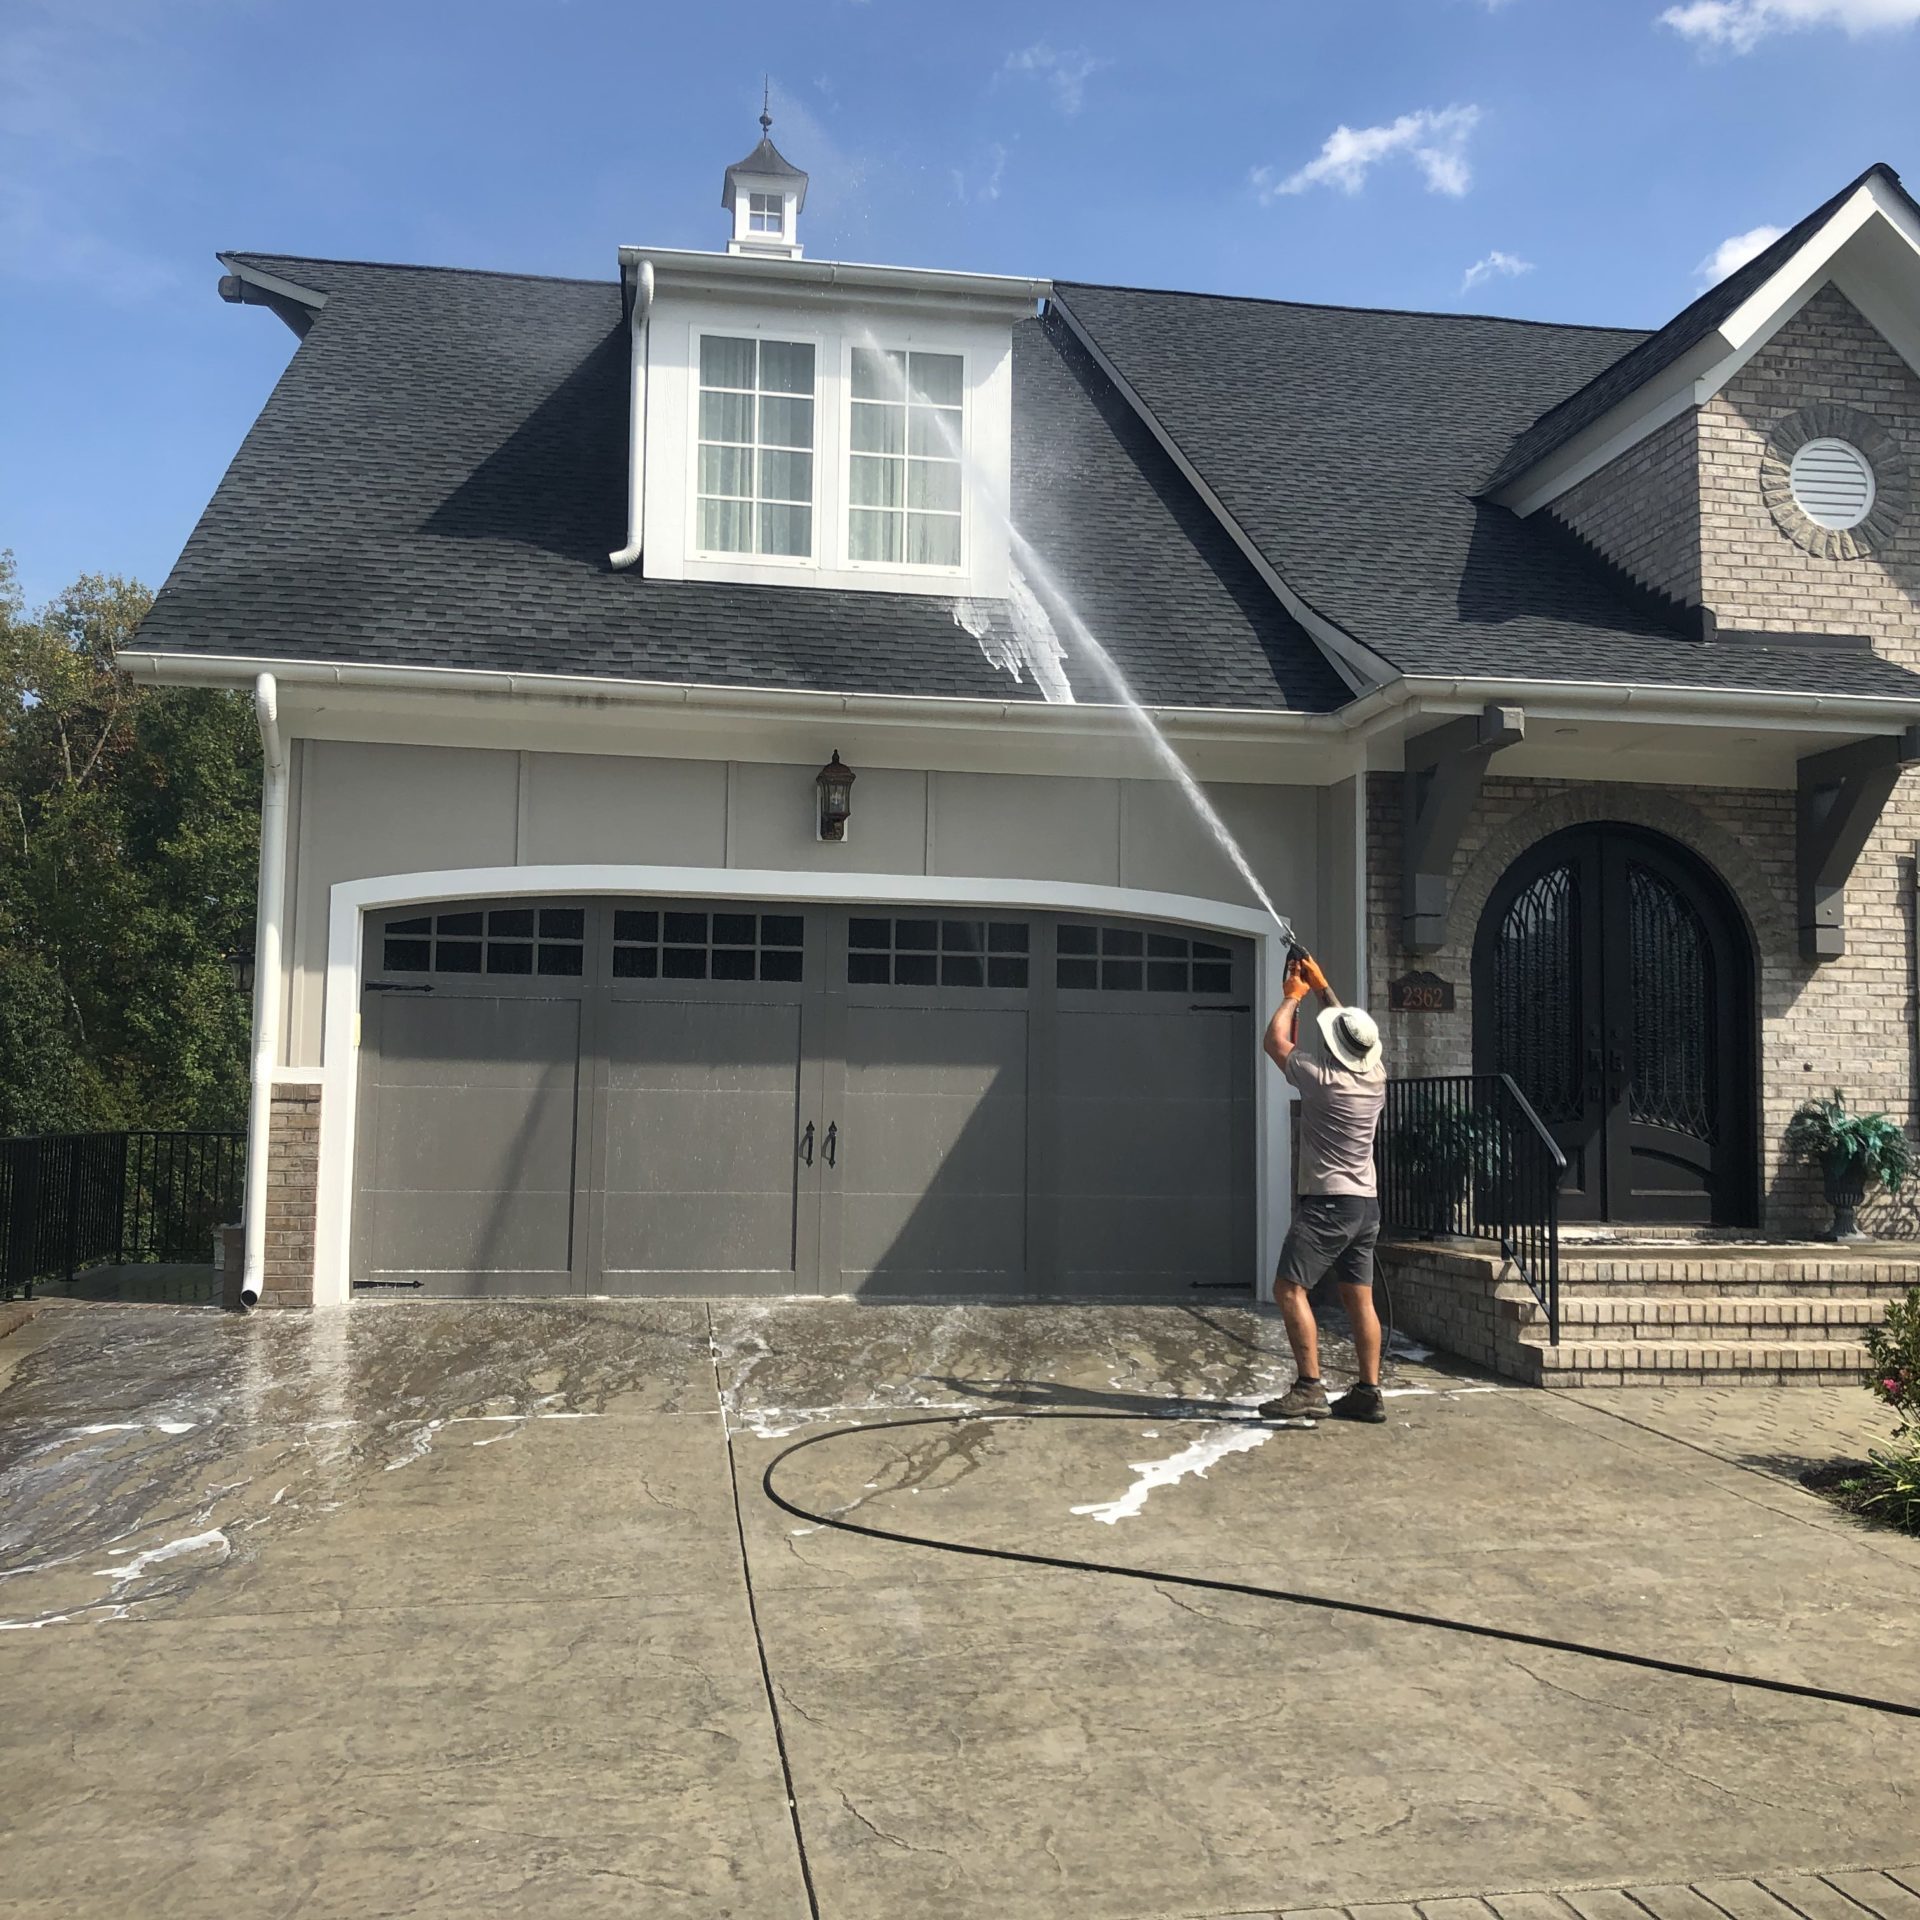 Reyco Pressure Washing & Sealing delivers the professional house washing expertise your property needs to get the most out of the place you call home.